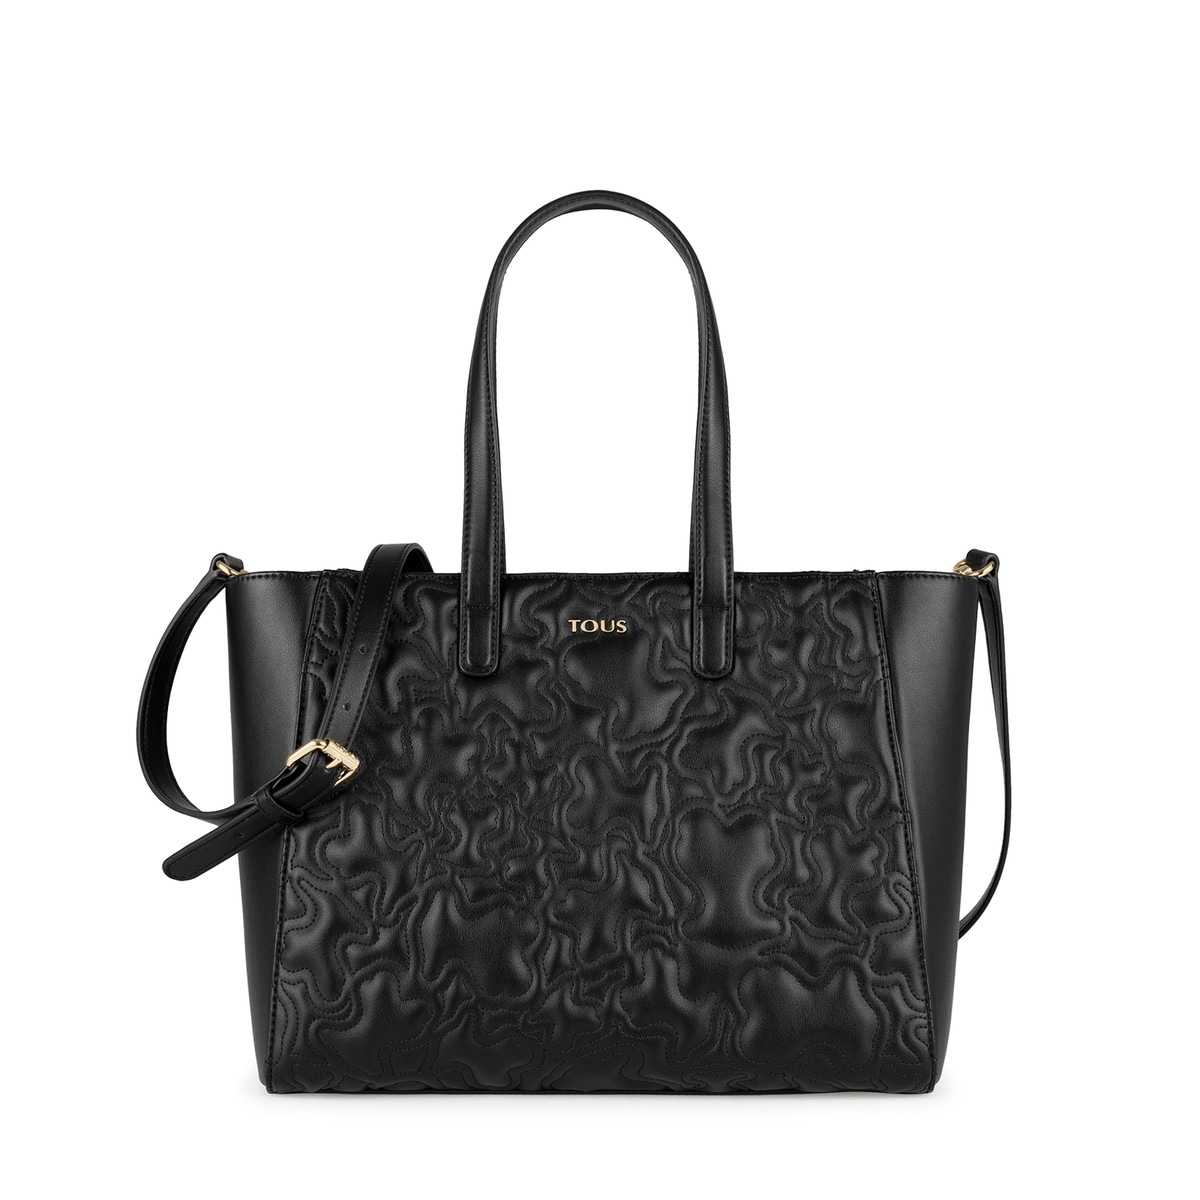 b88ba3d12d Black colored Kaos Capitone Tote bag - Tous Site US